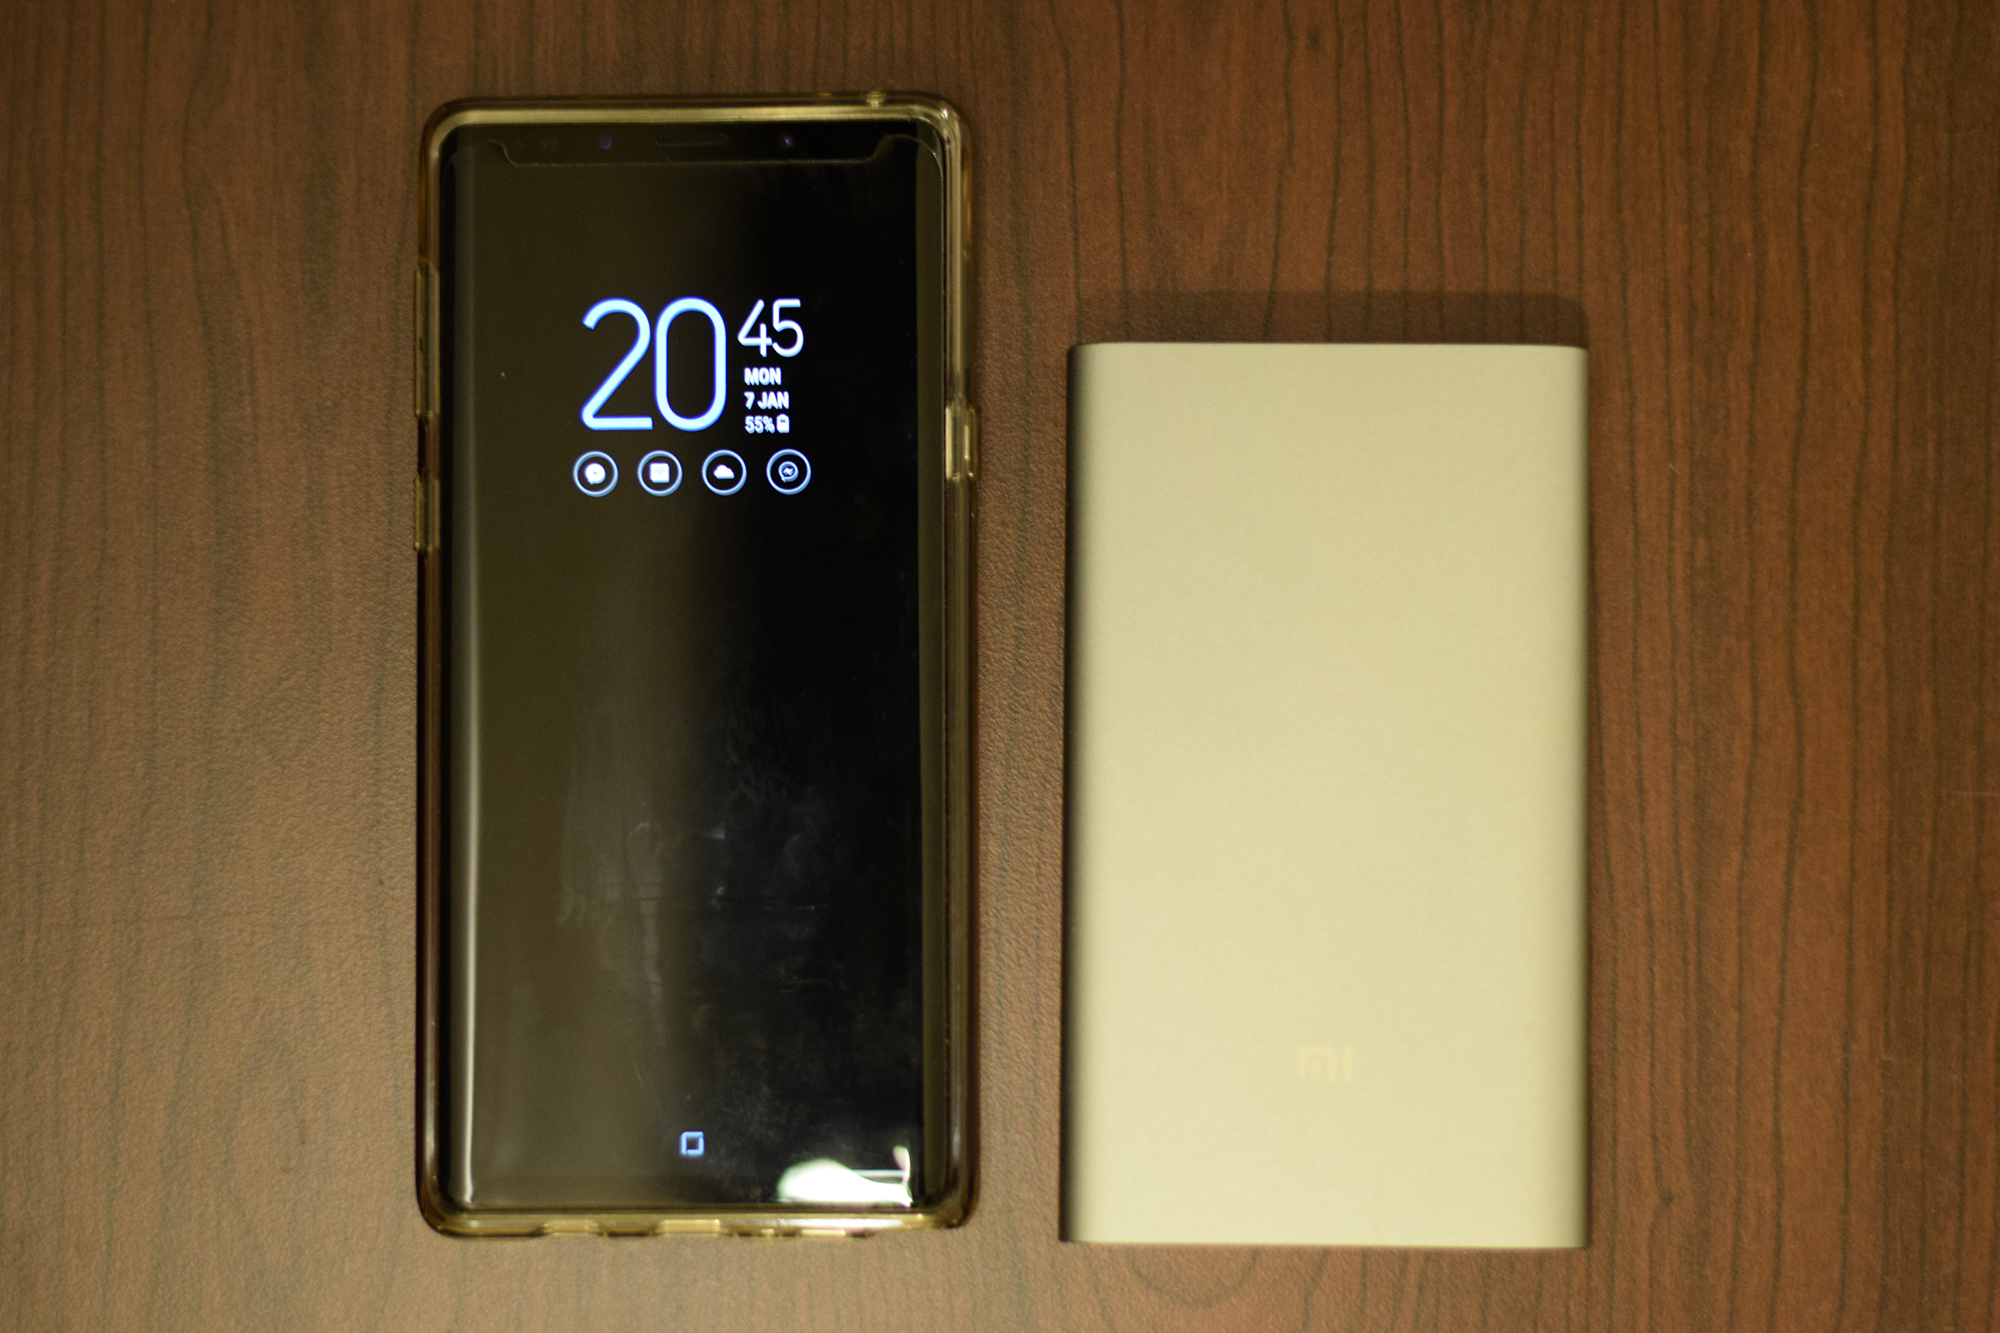 Galaxy Note 9 size compare to Xiaomi Power Bank Pro